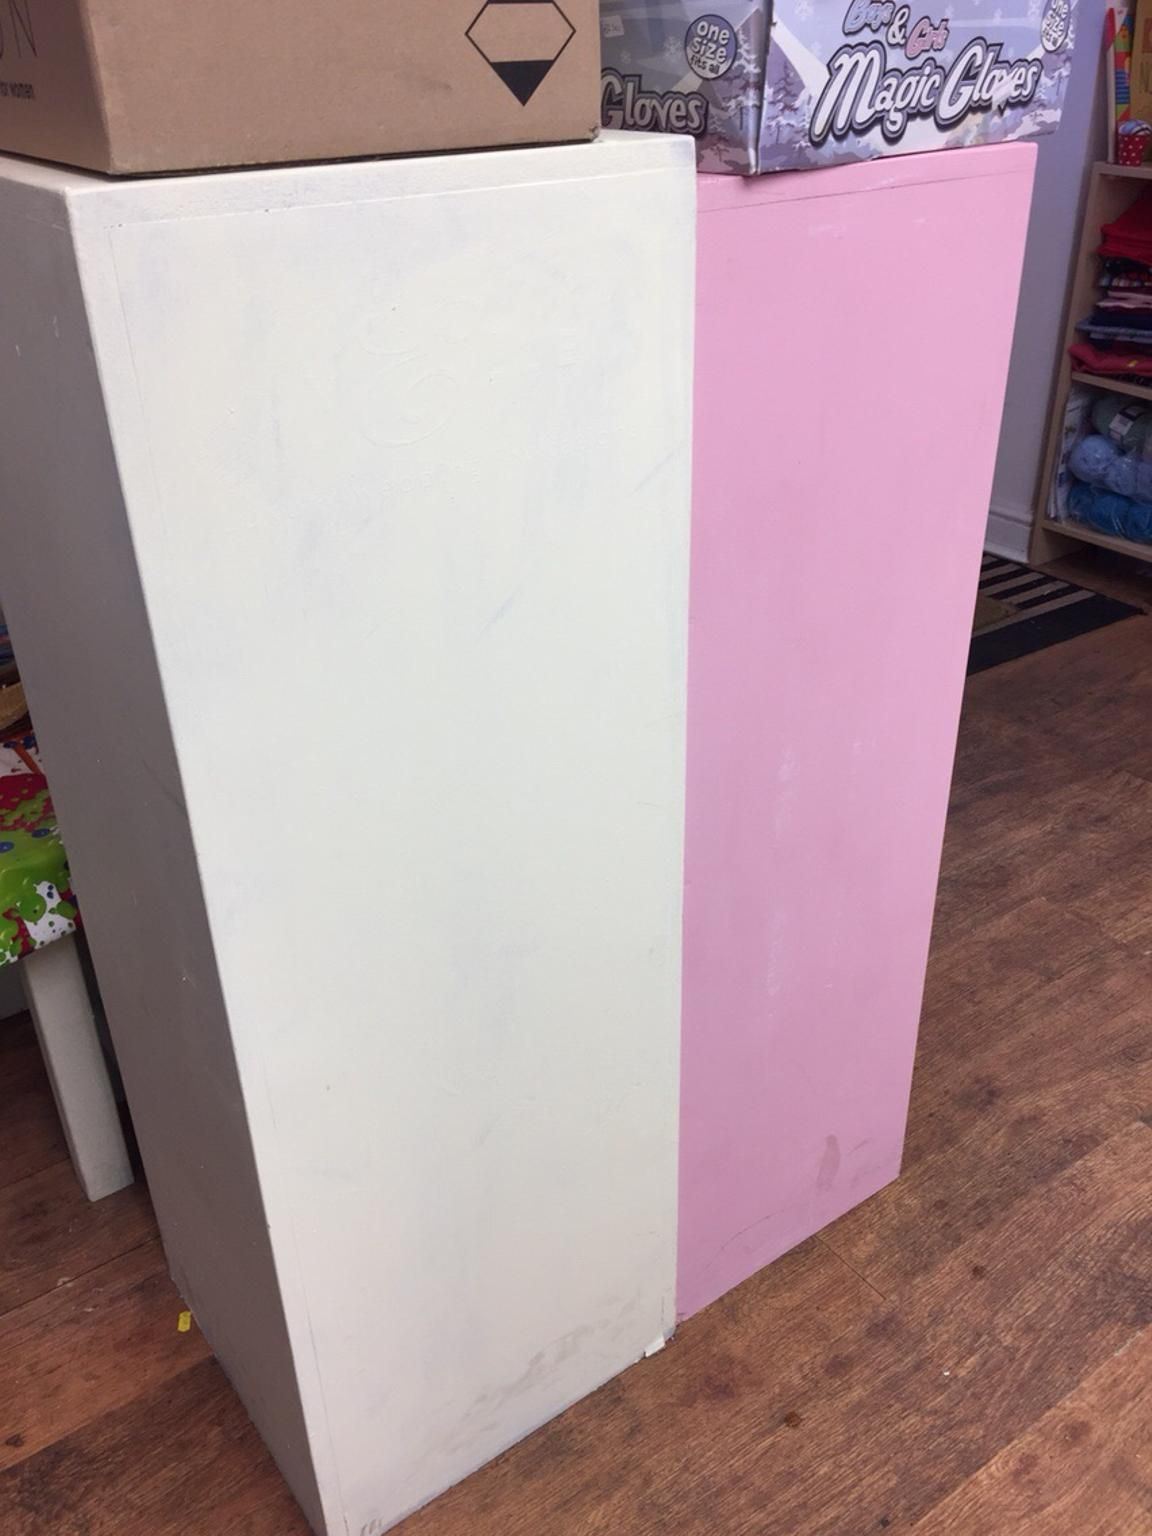 Used Display stands in BN5 Henfield um £ 20,00 – Shpock